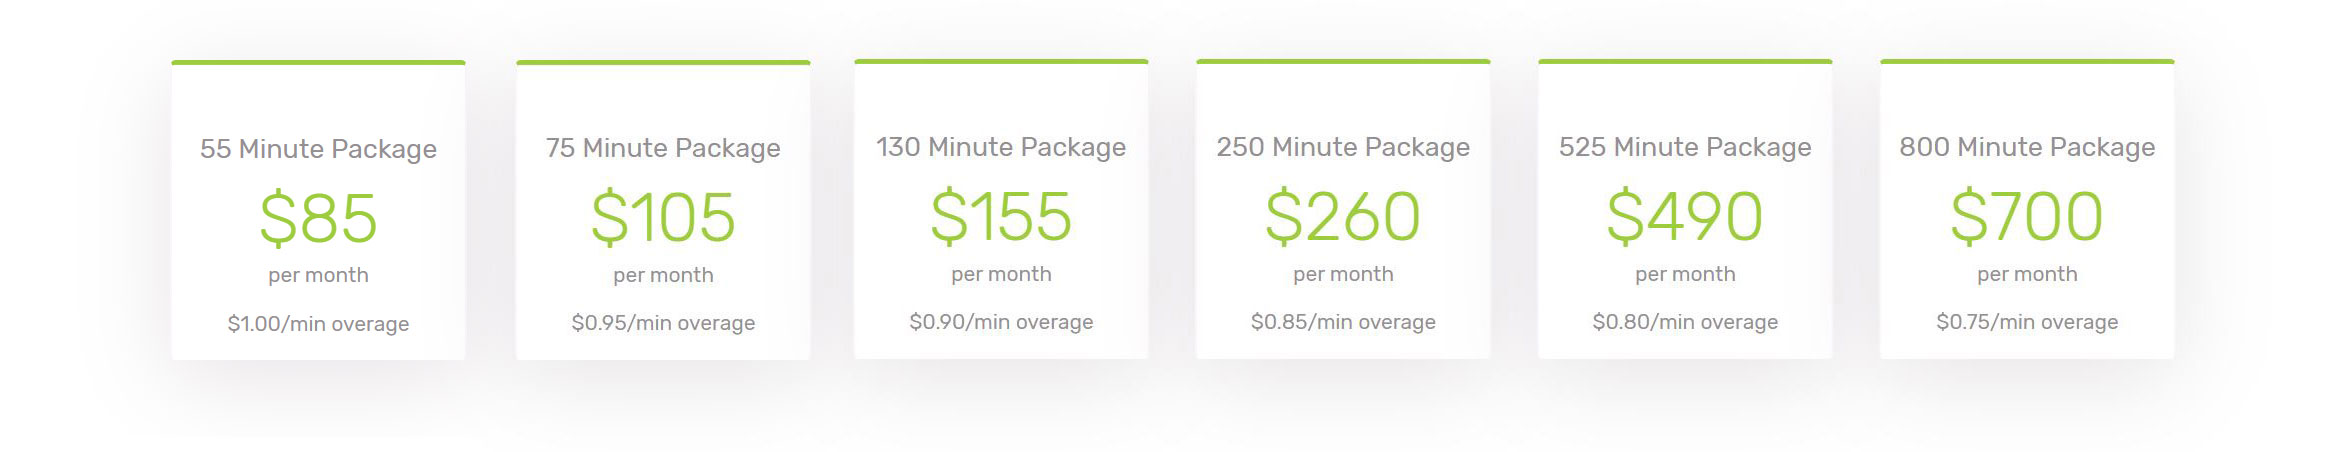 Answering Service Pricing Plans